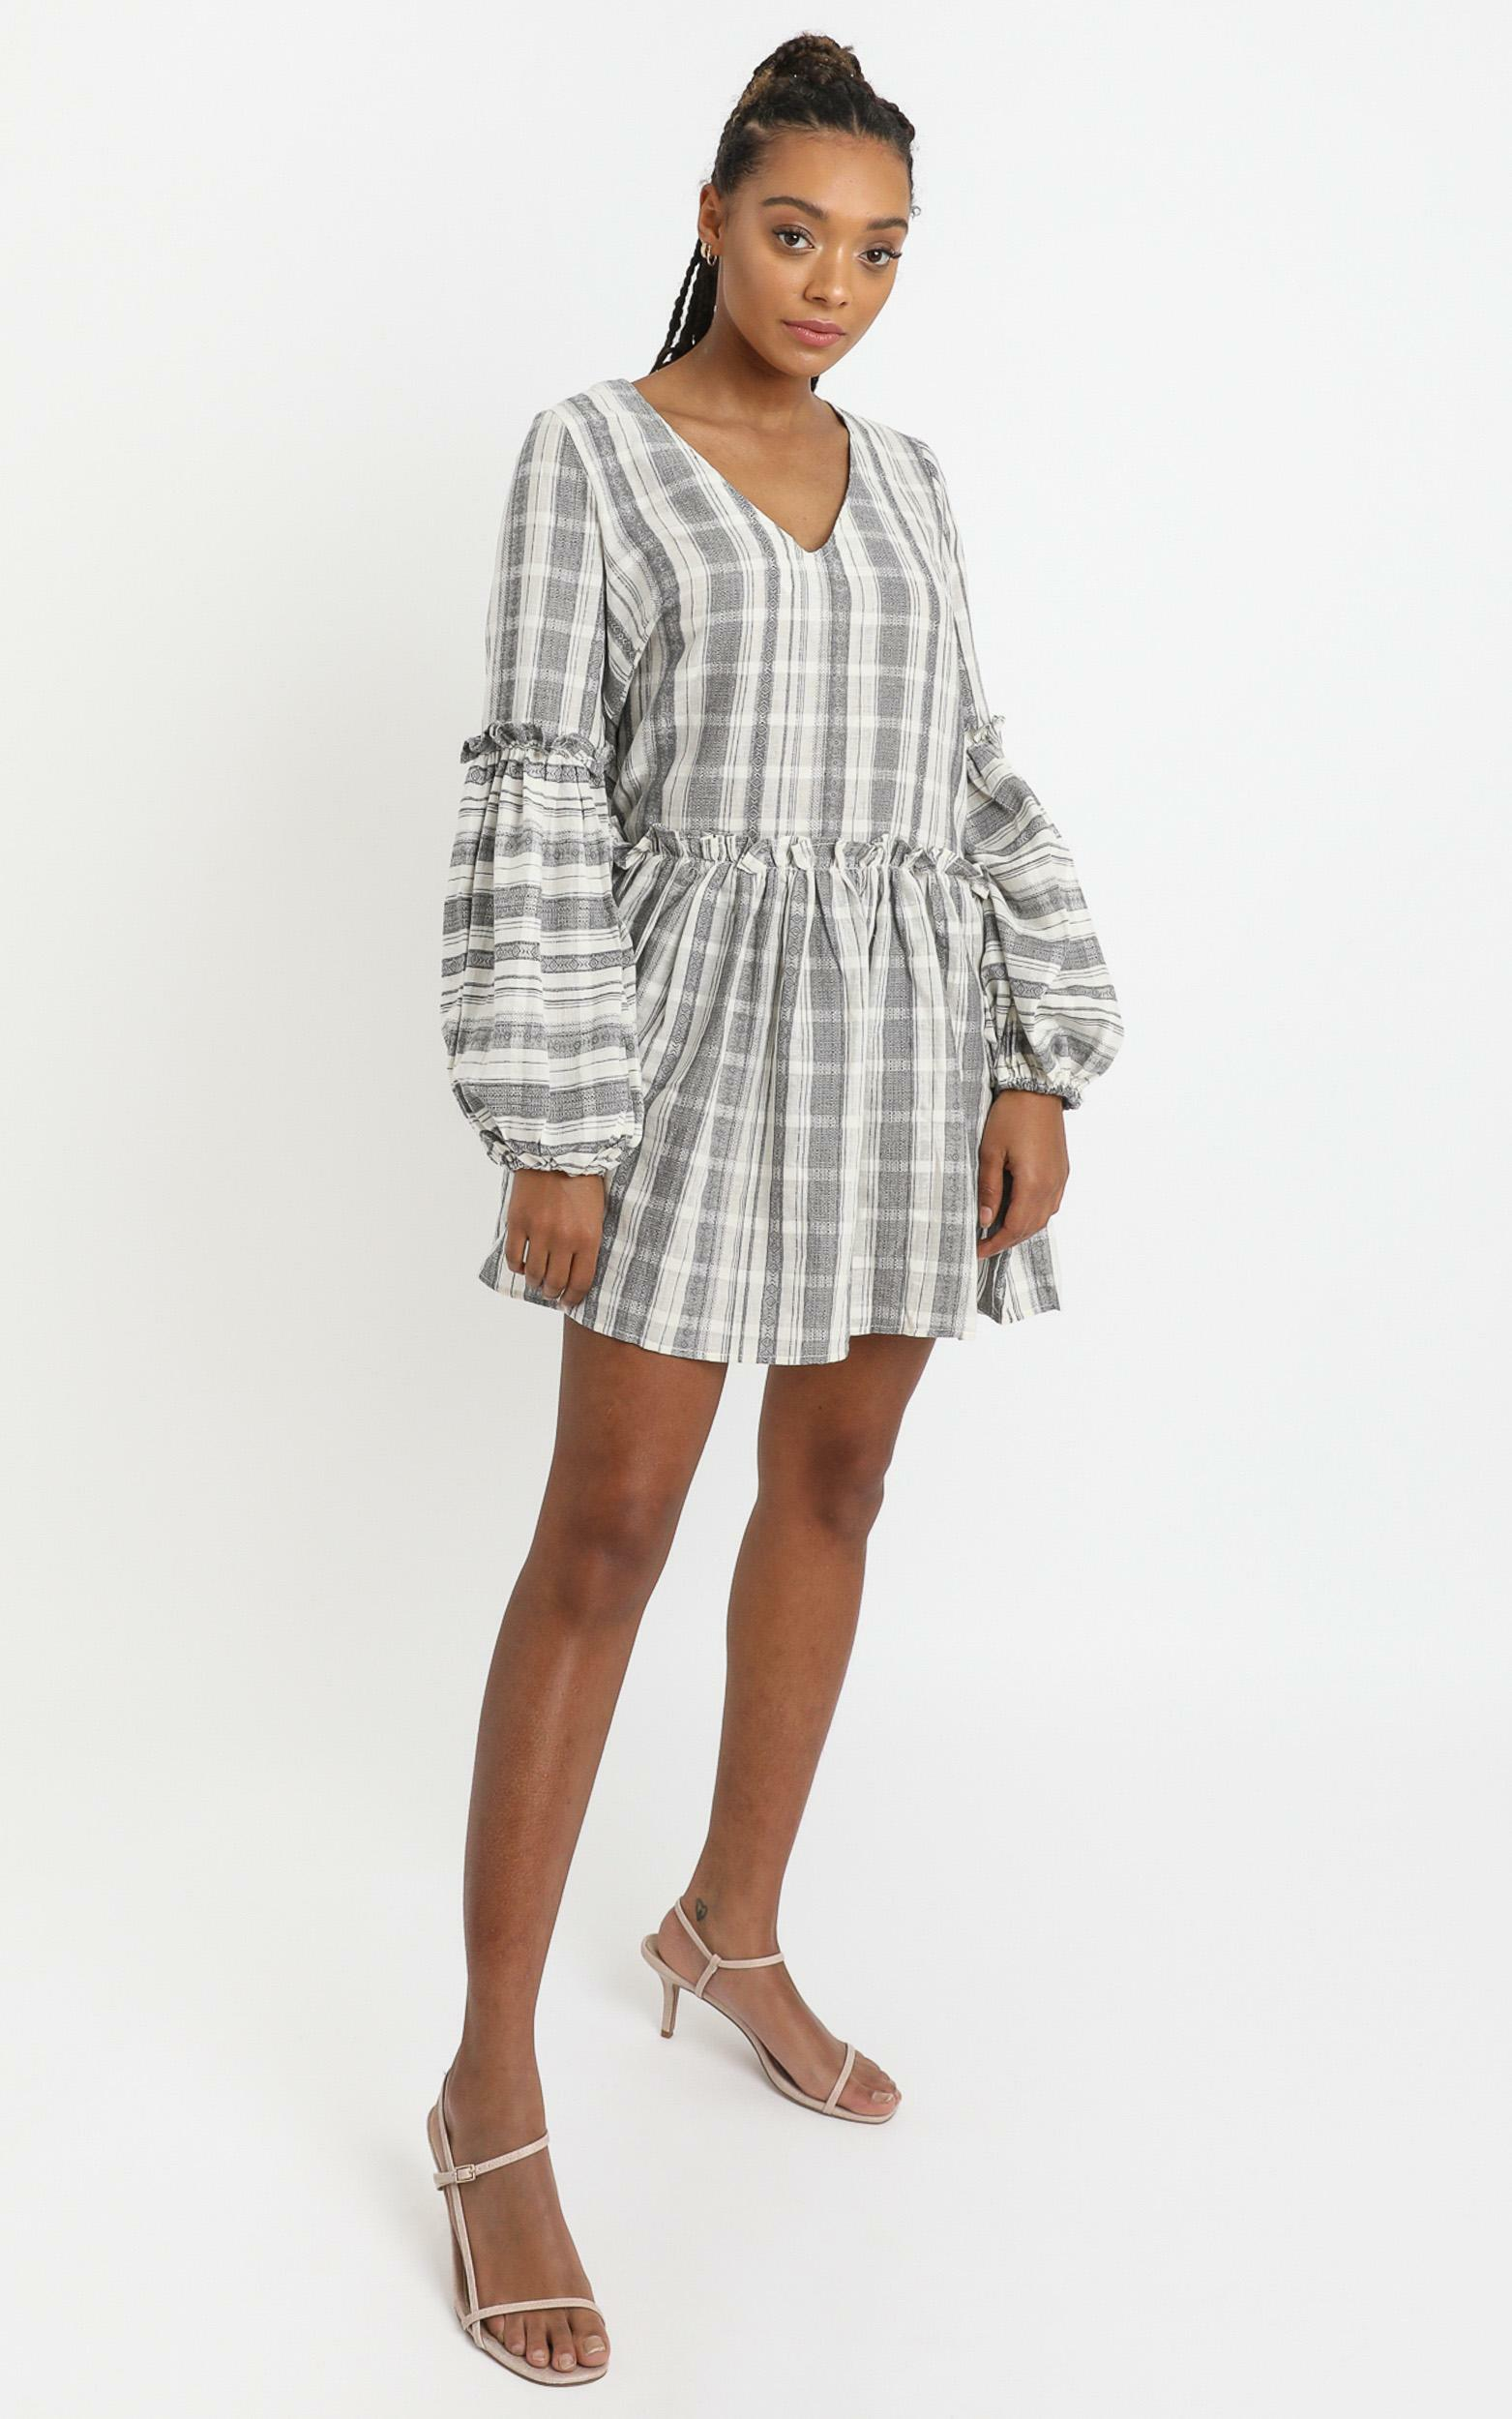 Cordelia Dress in Grey Check - 6 (XS), Grey, hi-res image number null